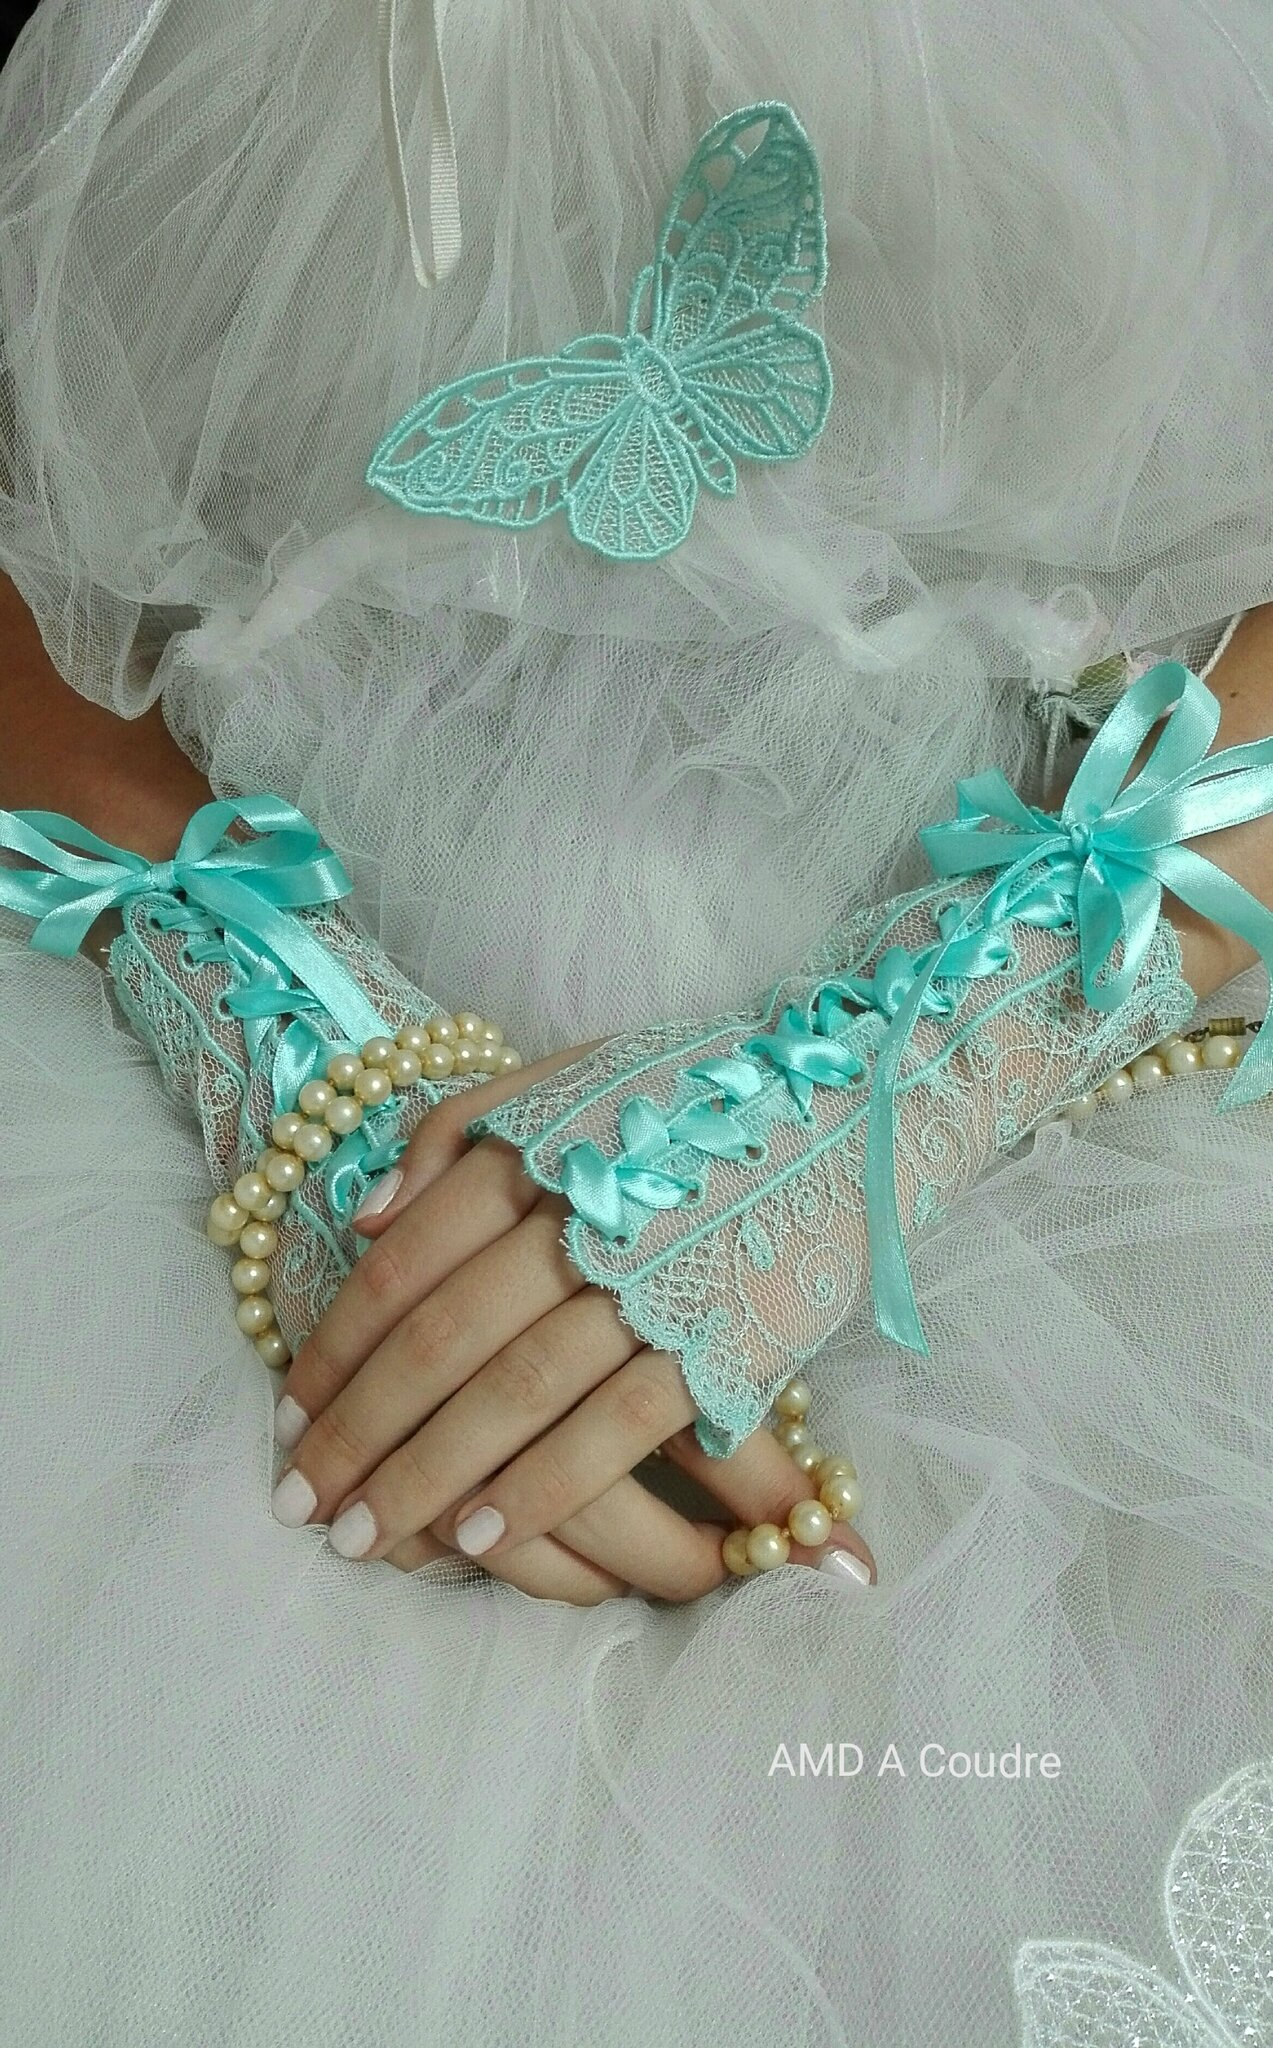 MITAINES BLEUES de mariage wedding AMD A COUDRE (4)